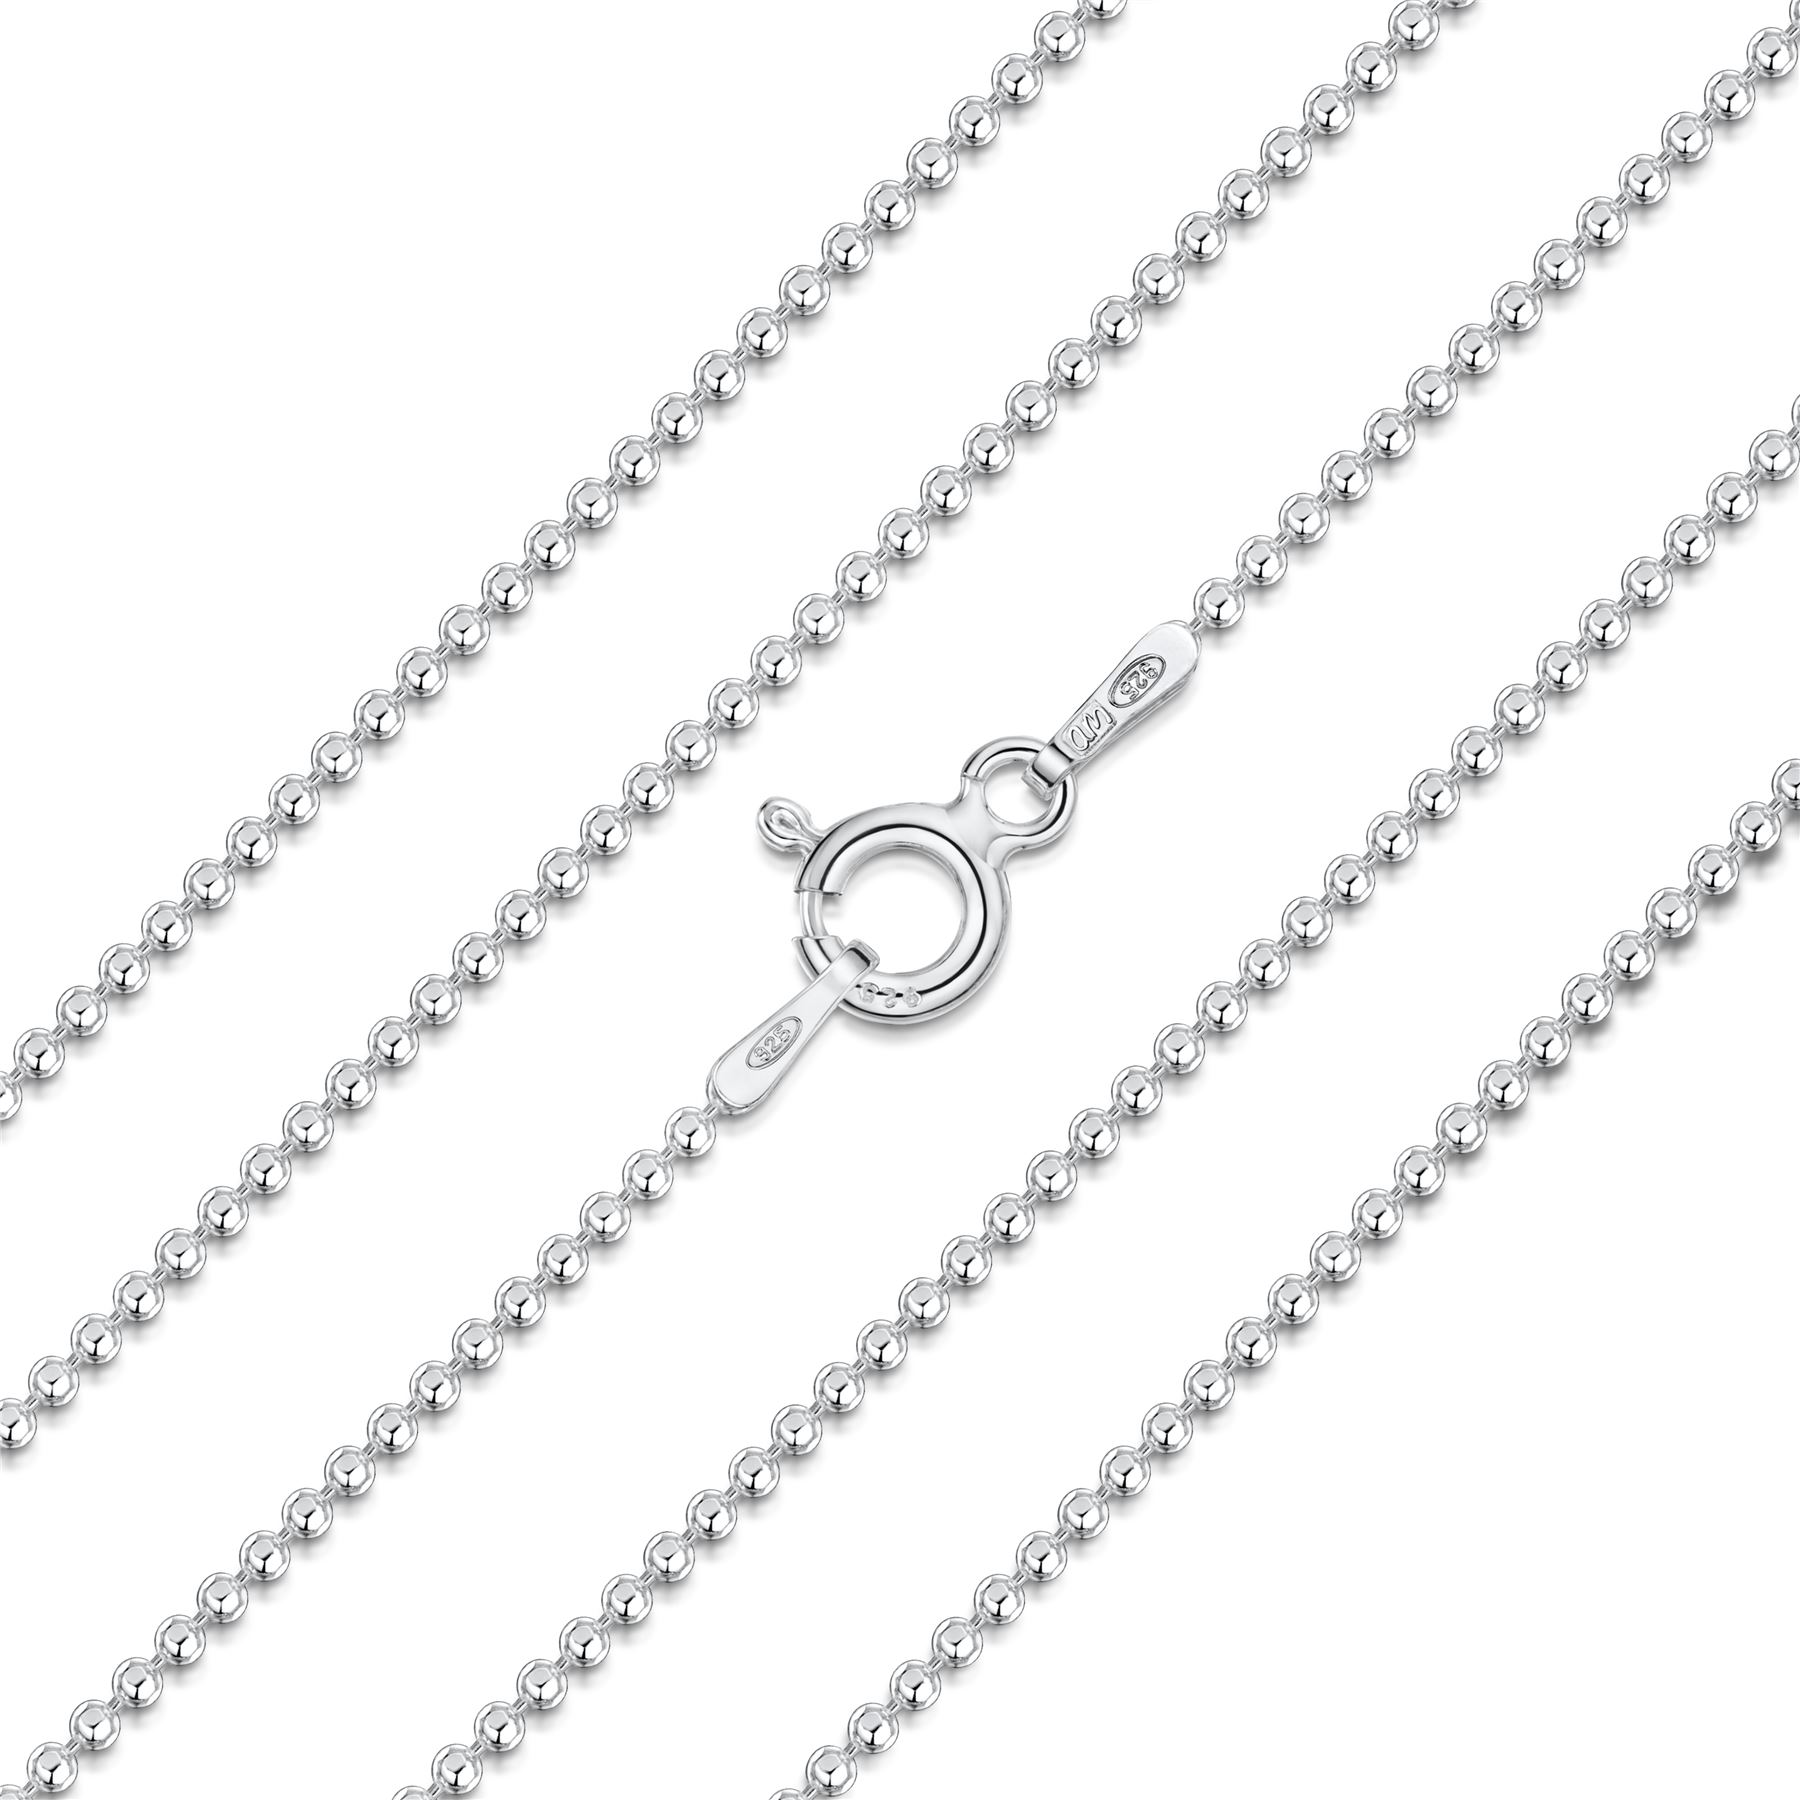 Amberta-Jewelry-Genuine-925-Sterling-Silver-Italian-Bead-Necklace-Ball-Chain thumbnail 4